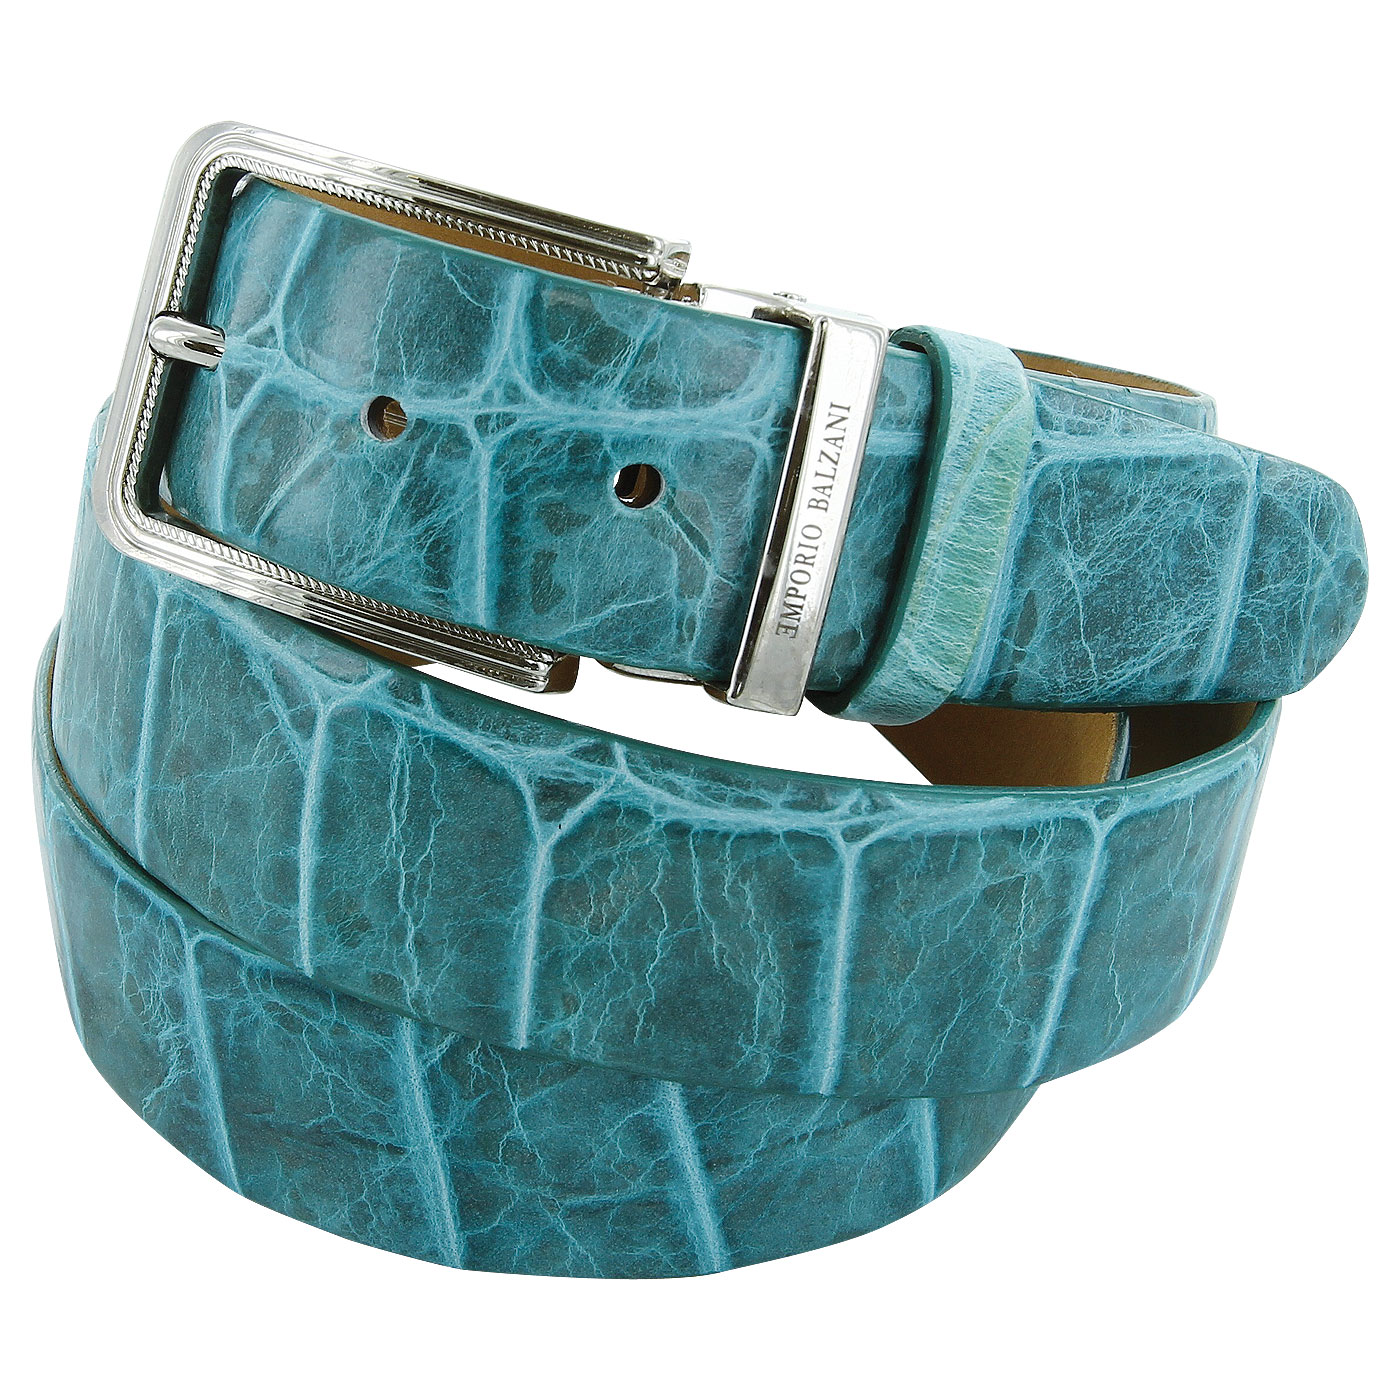 Men's Leather Belt Collection by Webmenshirts